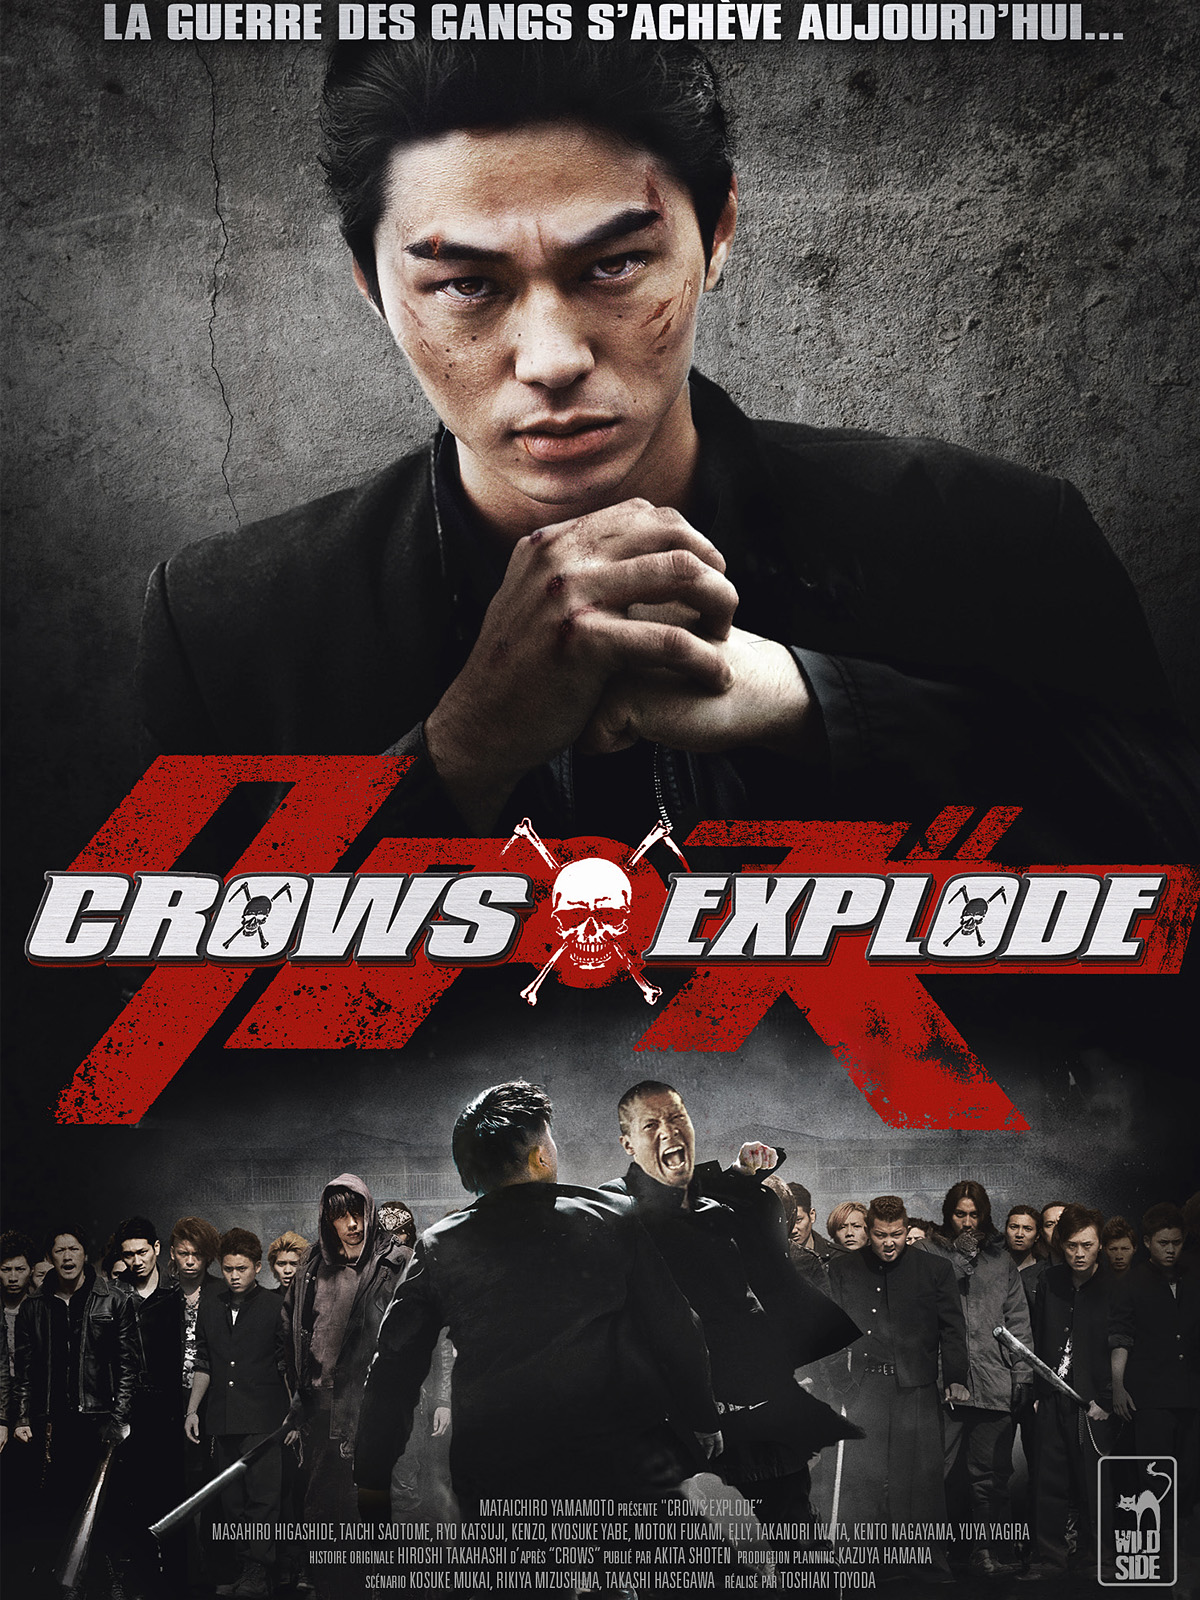 Download Film Crow Zero 3 Hd Csi Miami Season 4 Episode 24 Rampage